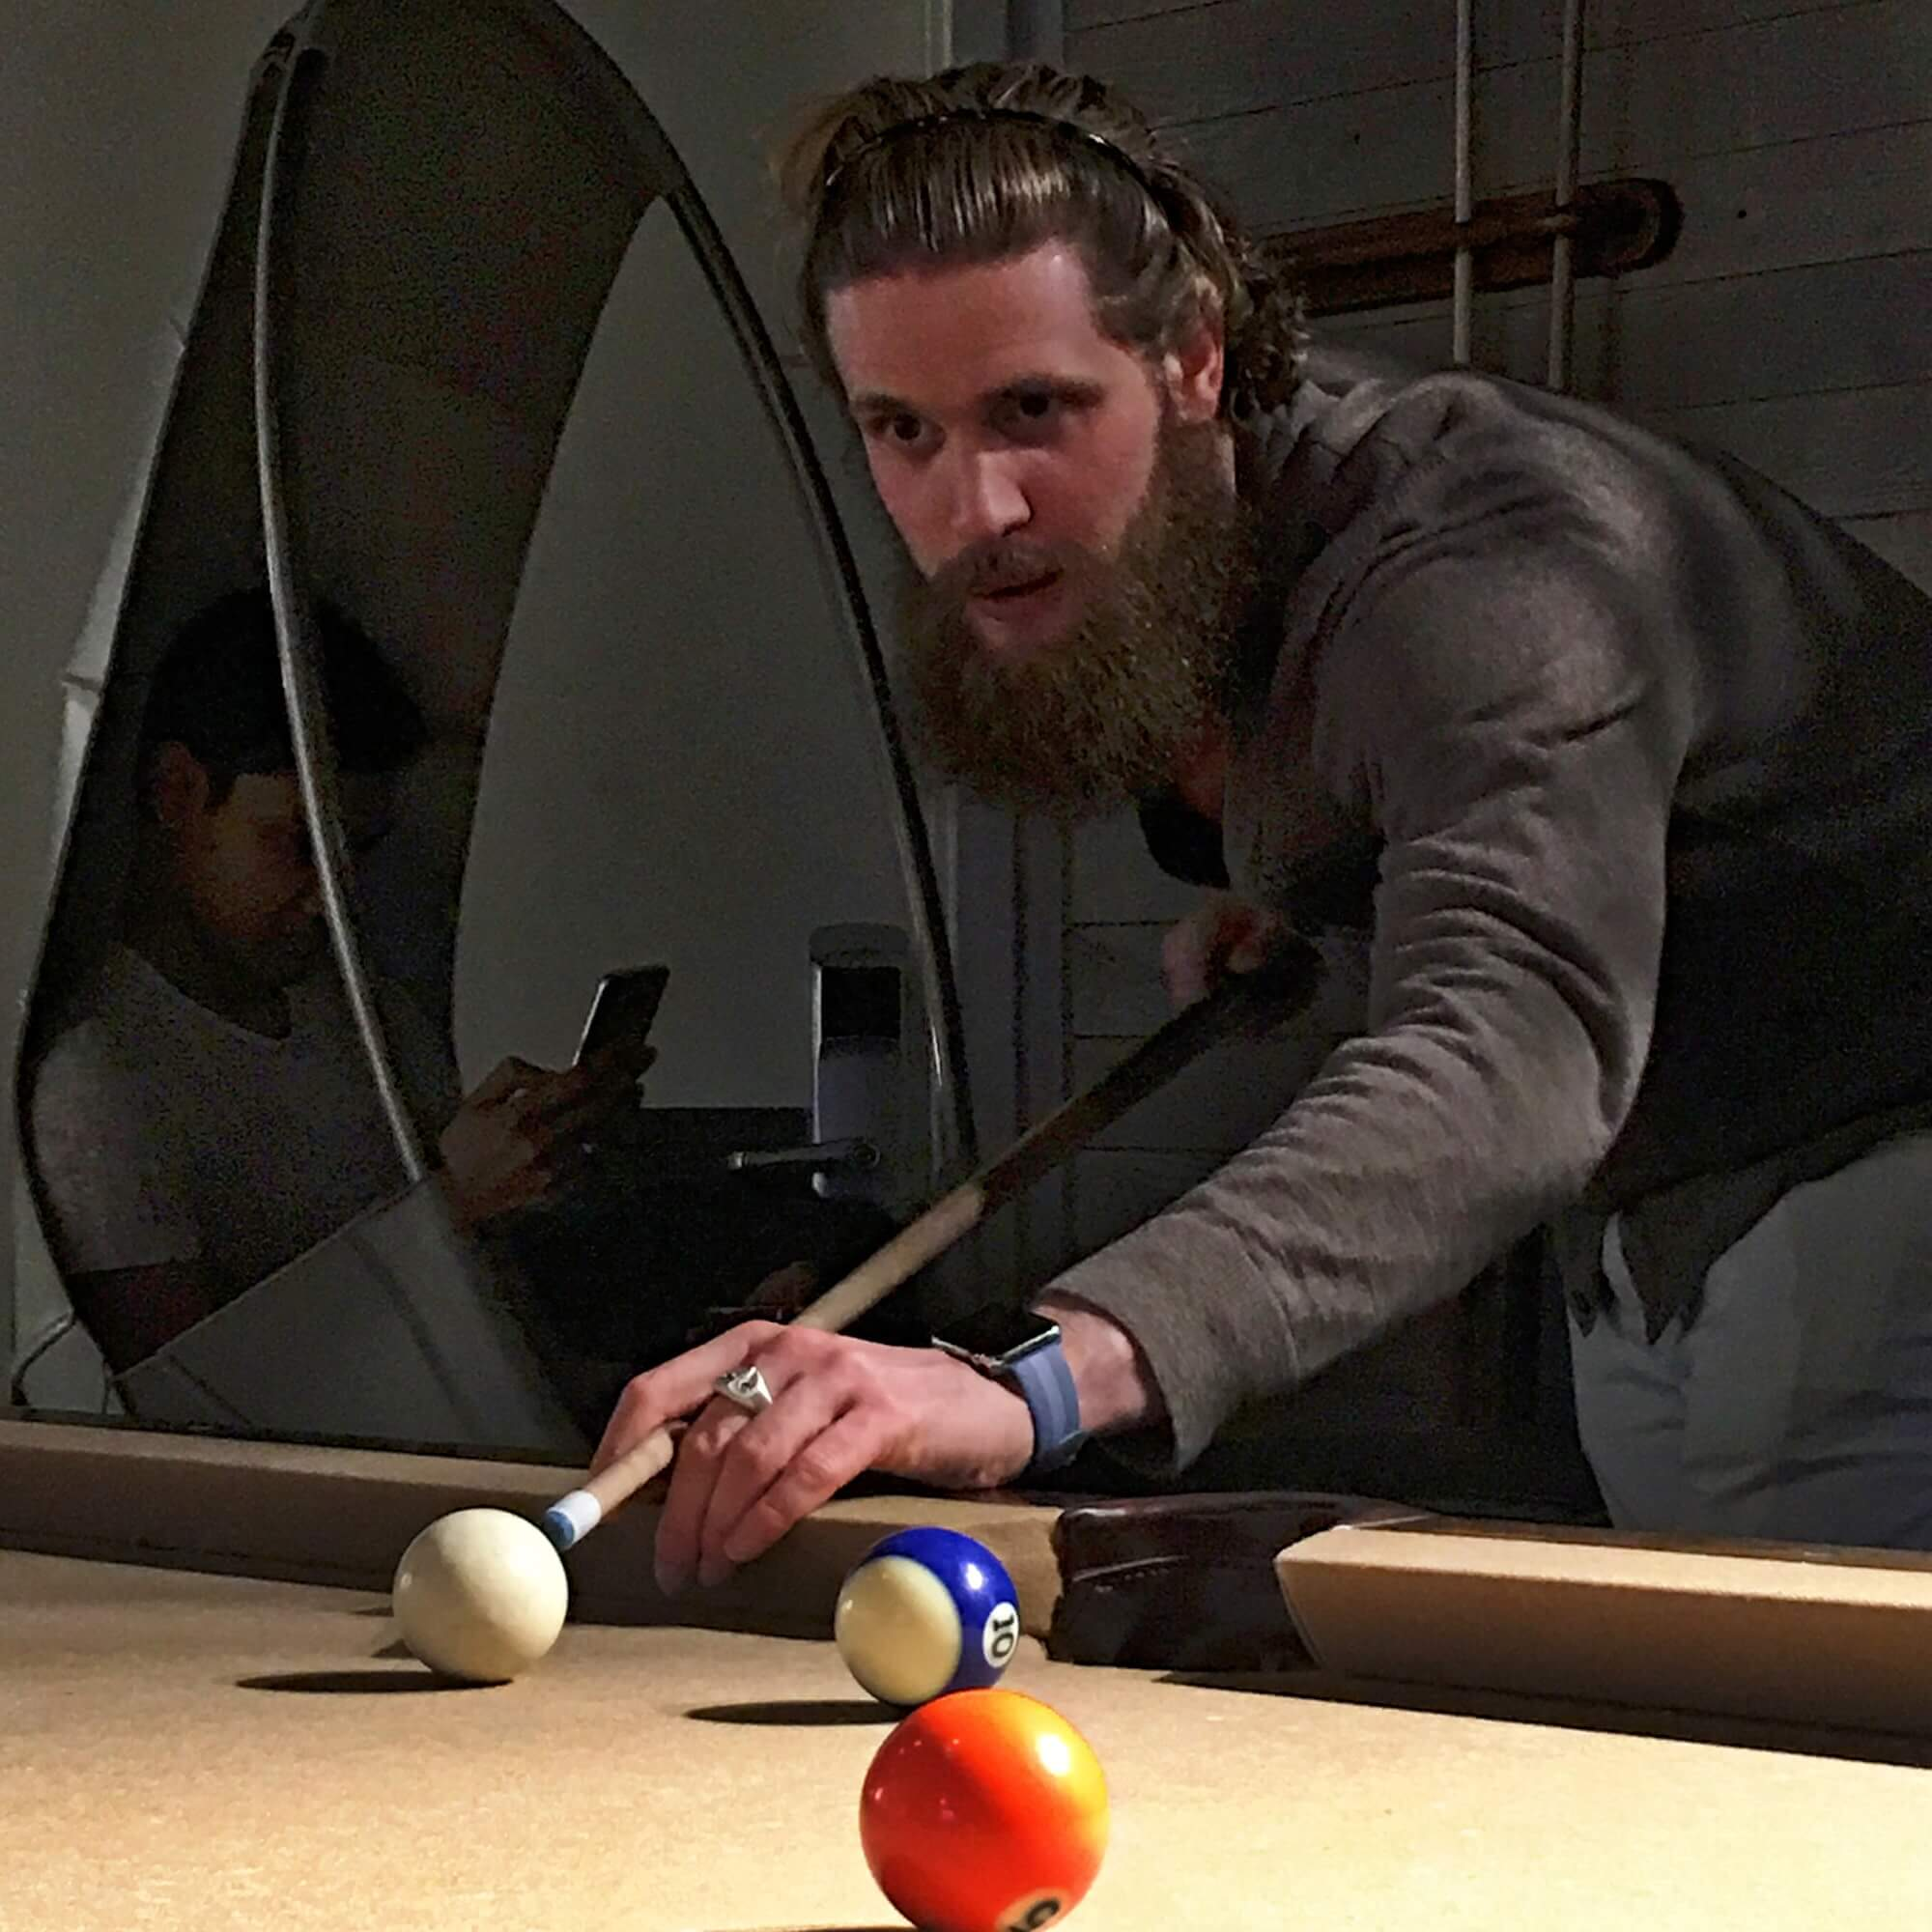 Aaron Krause Playing Pool